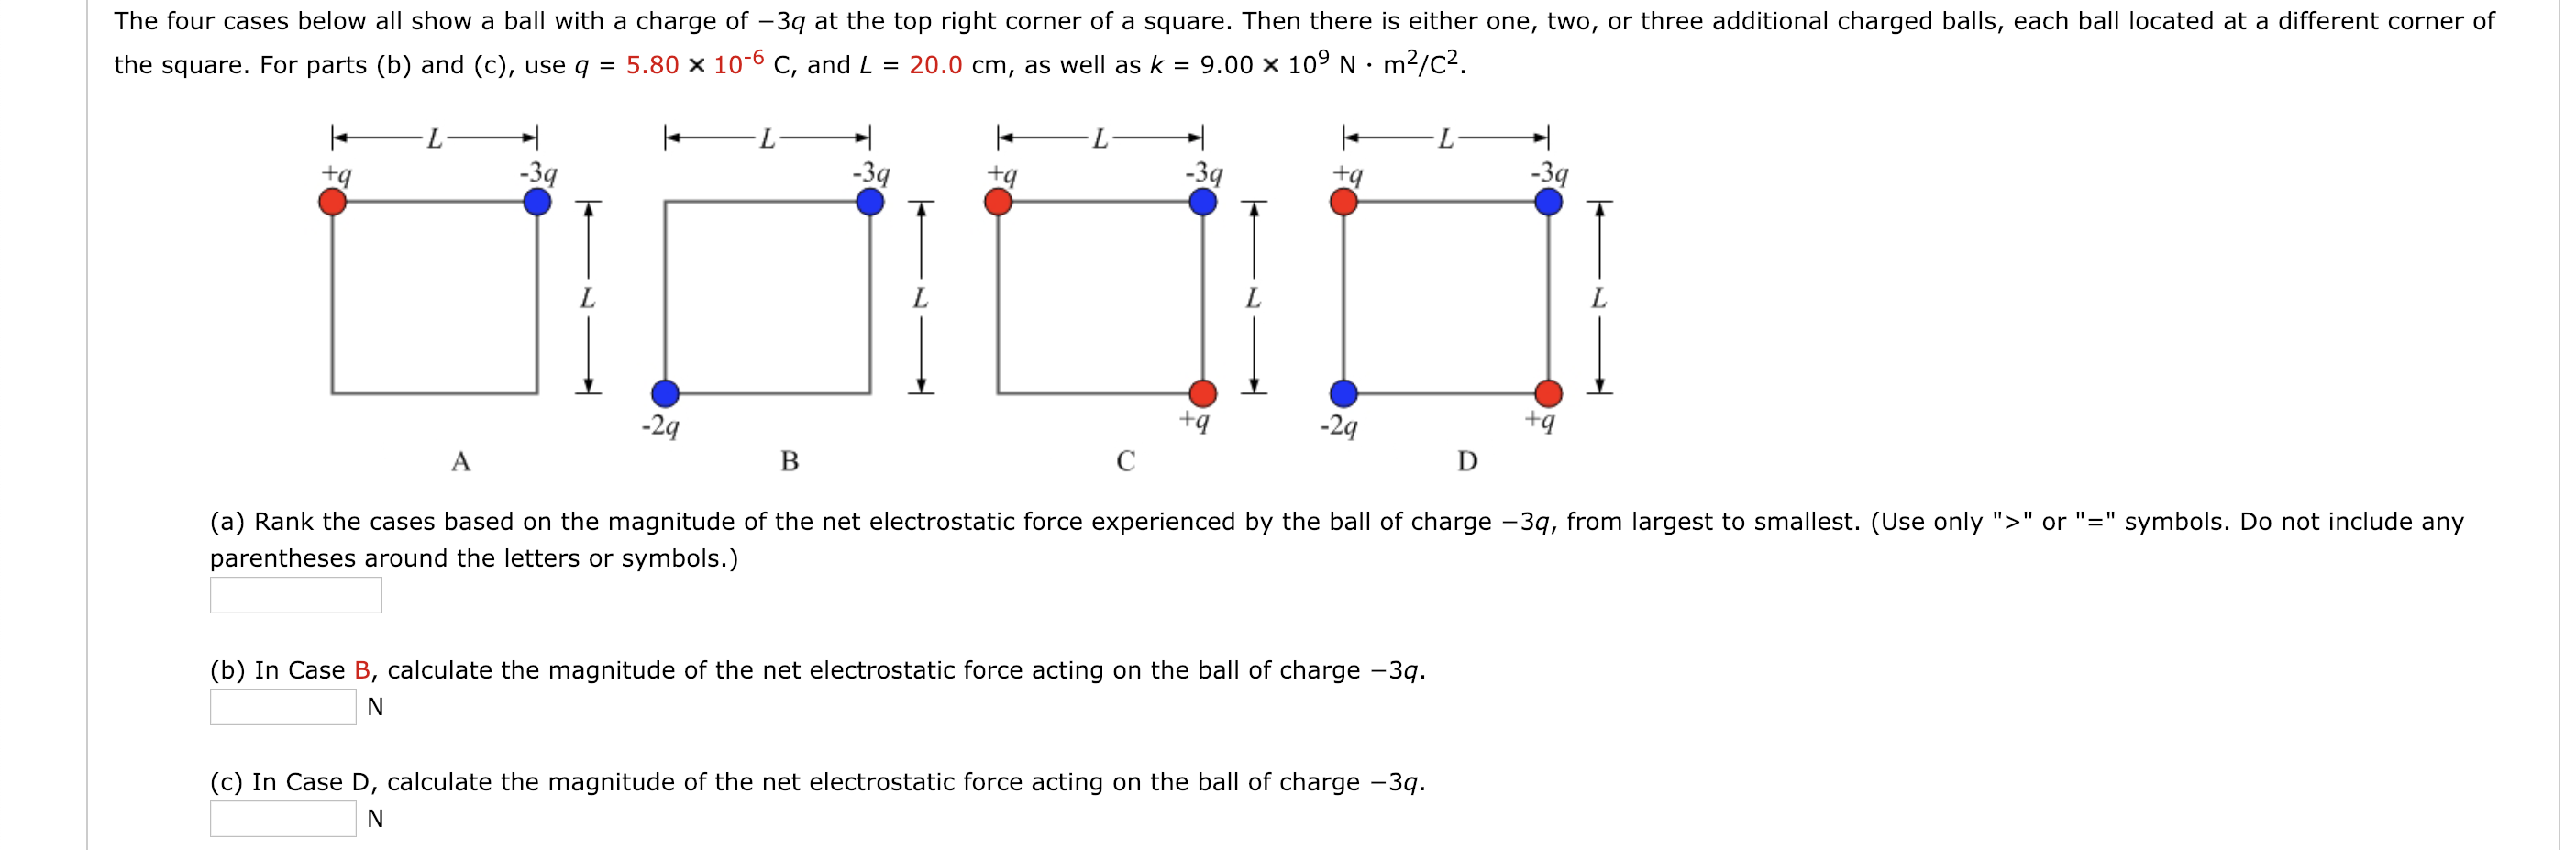 "The four cases below all show a ball with a charge of -3q at the top right corner of a square. Then there is either one, two, or three additional charged balls, each ball located at a different corner of the square. For parts (b) and (c), use q 5.80 x 10-6 C, and L 20.0 cm, as well as k9.00 x 109 N m2/c2 2q -2q tq (a) Rank the cases based on the magnitude of the net electrostatic force experienced by the ball of charge -3q, from largest to smallest. (Use only ""orsymbols. Do not include any parentheses around the letters or symbols.) (b) In Case B, calculate the magnitude of the net electrostatic force acting on the ball of charge -3q Iae D, calculate the magnitude of the net electrostatic force acting on the ball of charge -3"